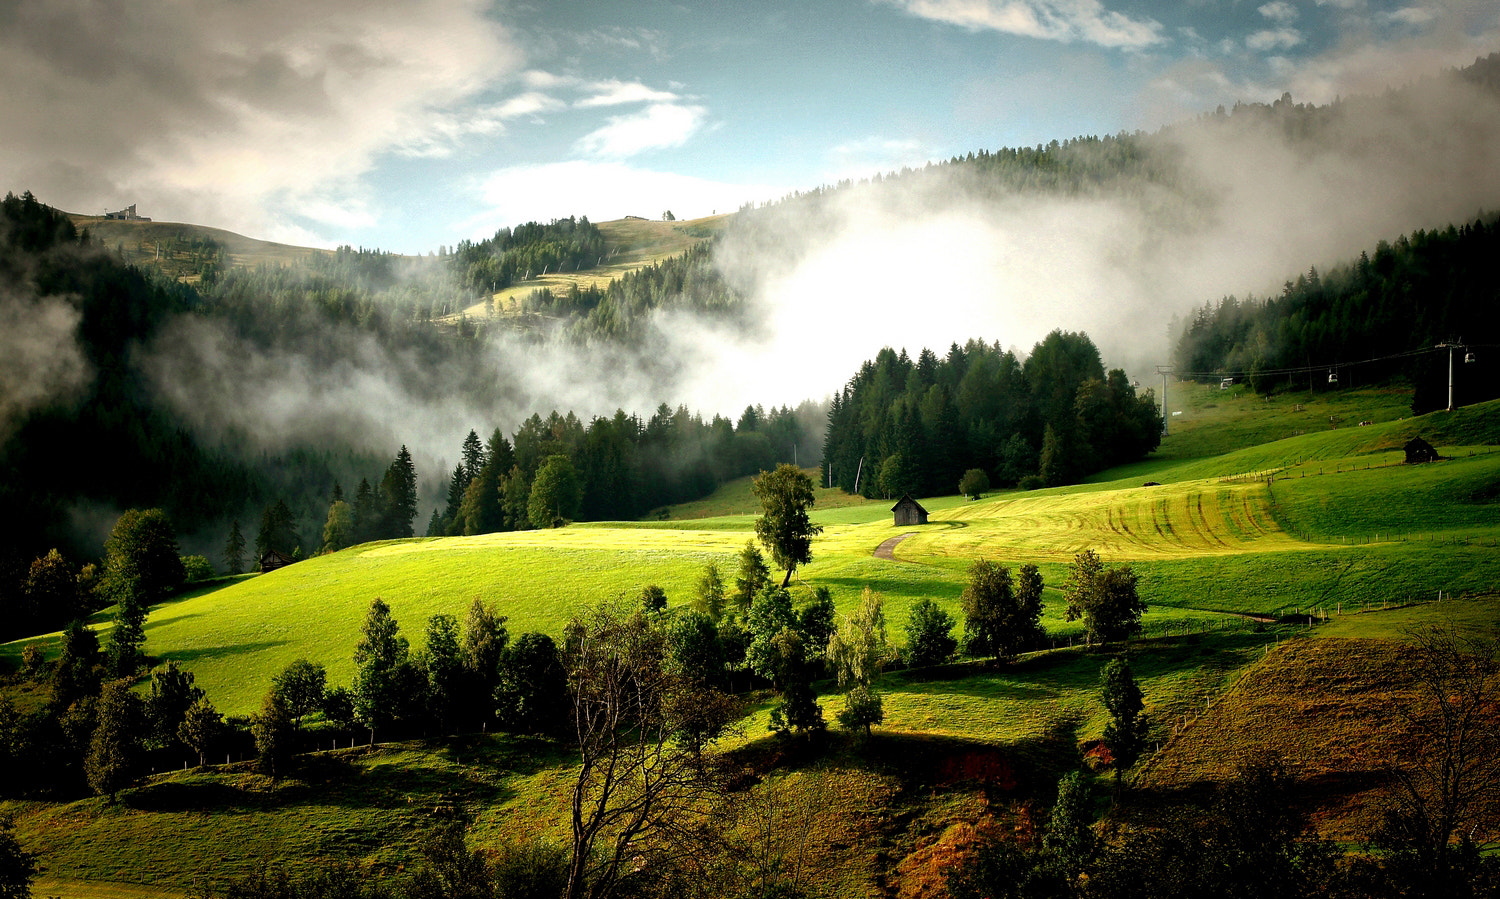 Photograph morning on the mountain by Andy 58 on 500px